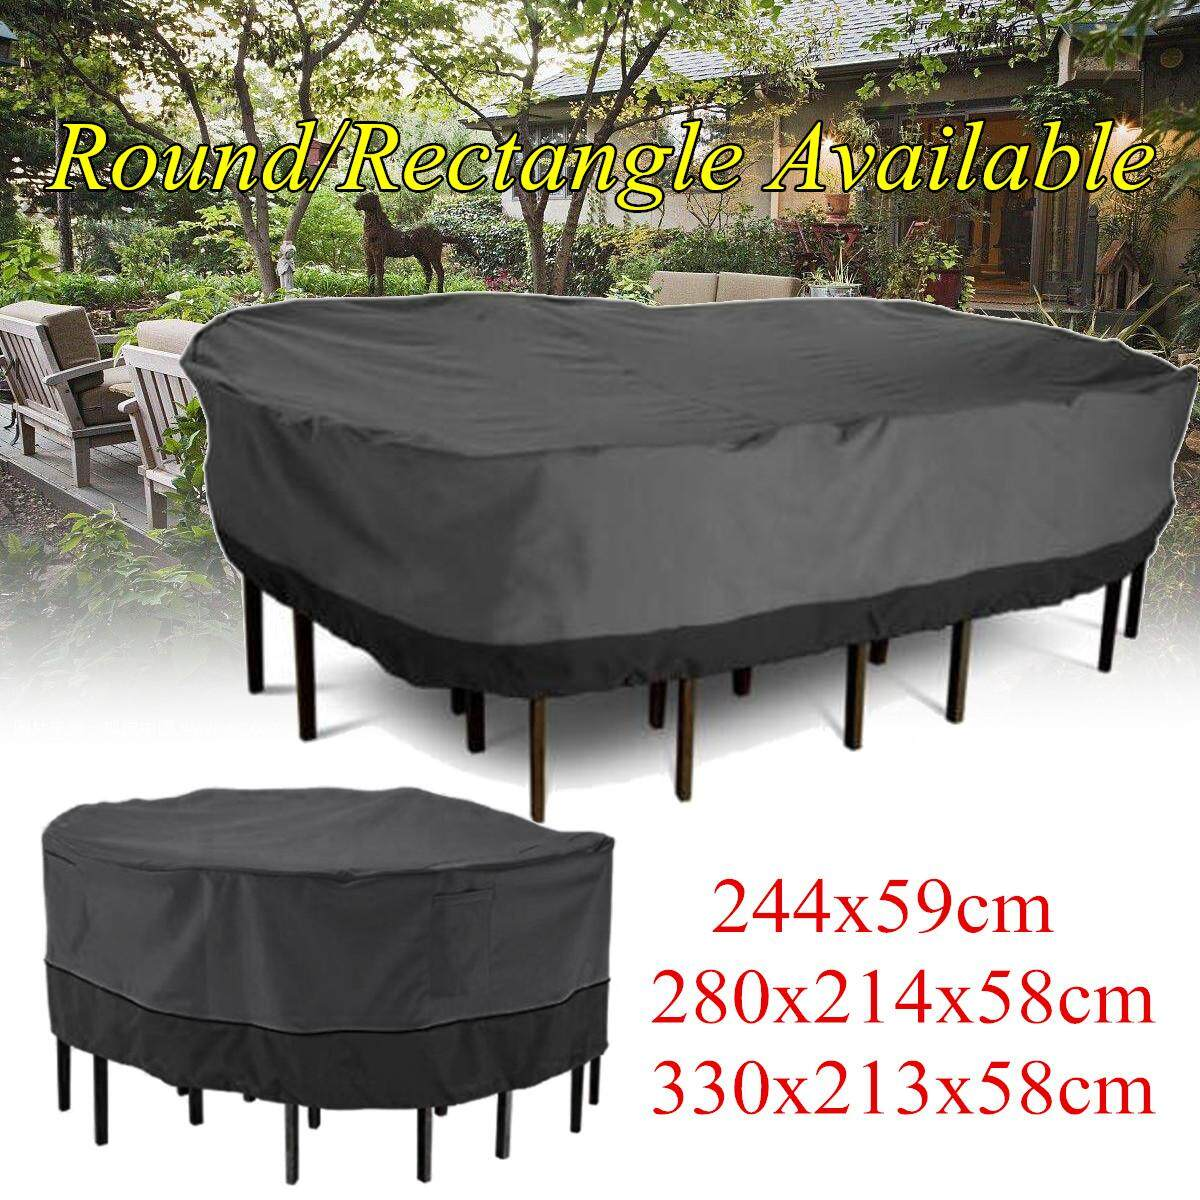 (photo)Large Patio Garden Rectangular Oval Table Chair Cover Outdoor Furniture Winter [280*214*58cm]